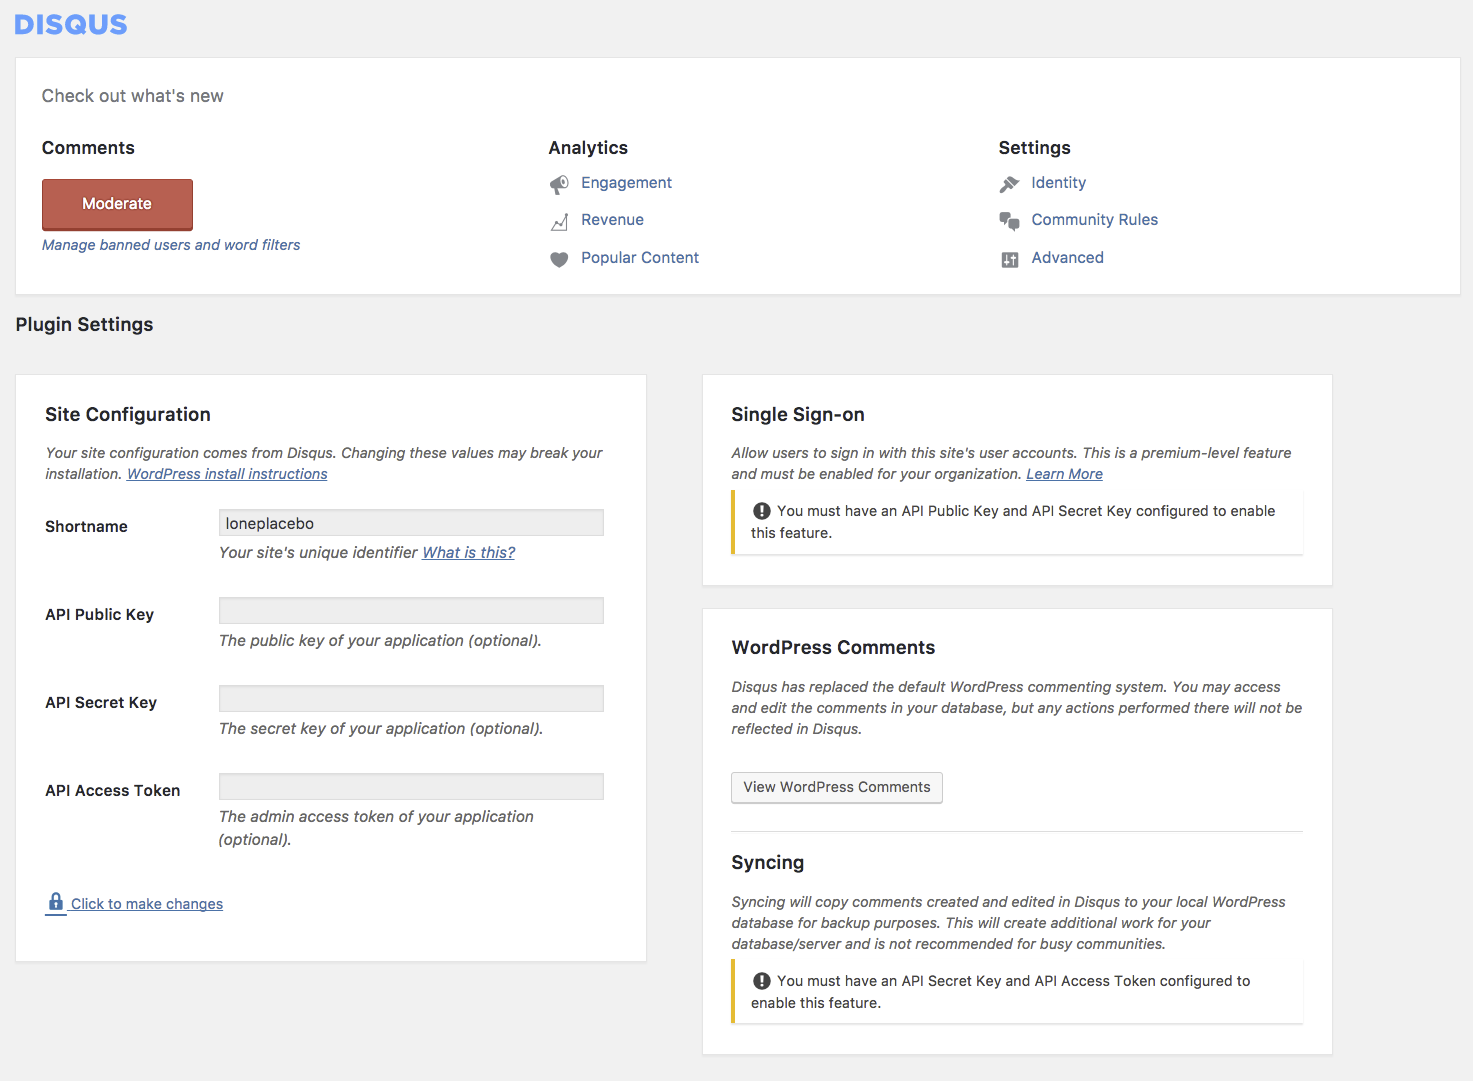 disqus-wordpress=plugin-settings-page.png